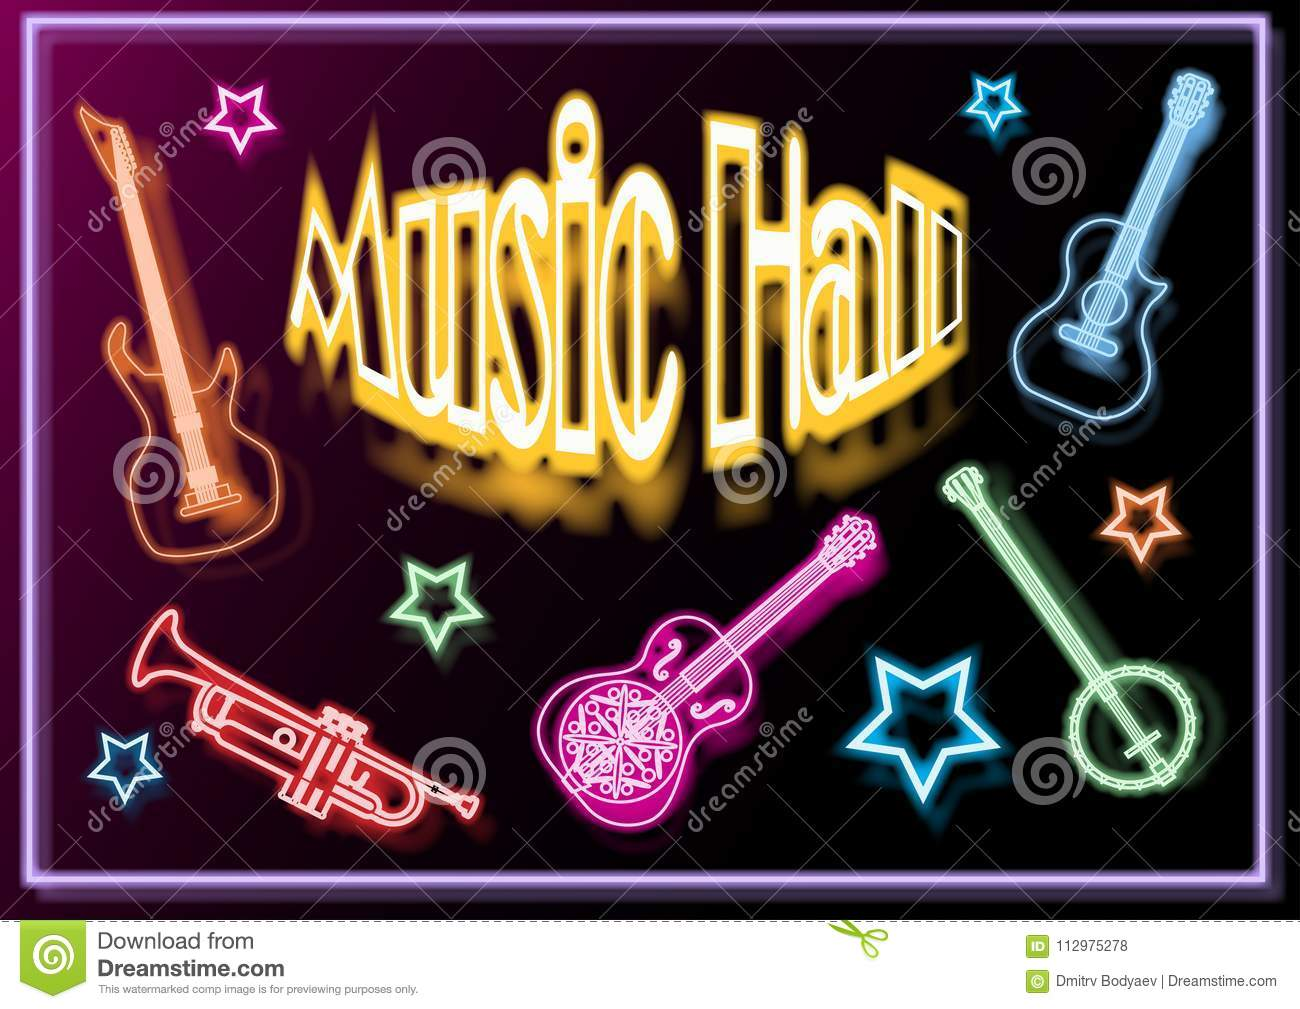 Music-hall, poster, with musical instruments